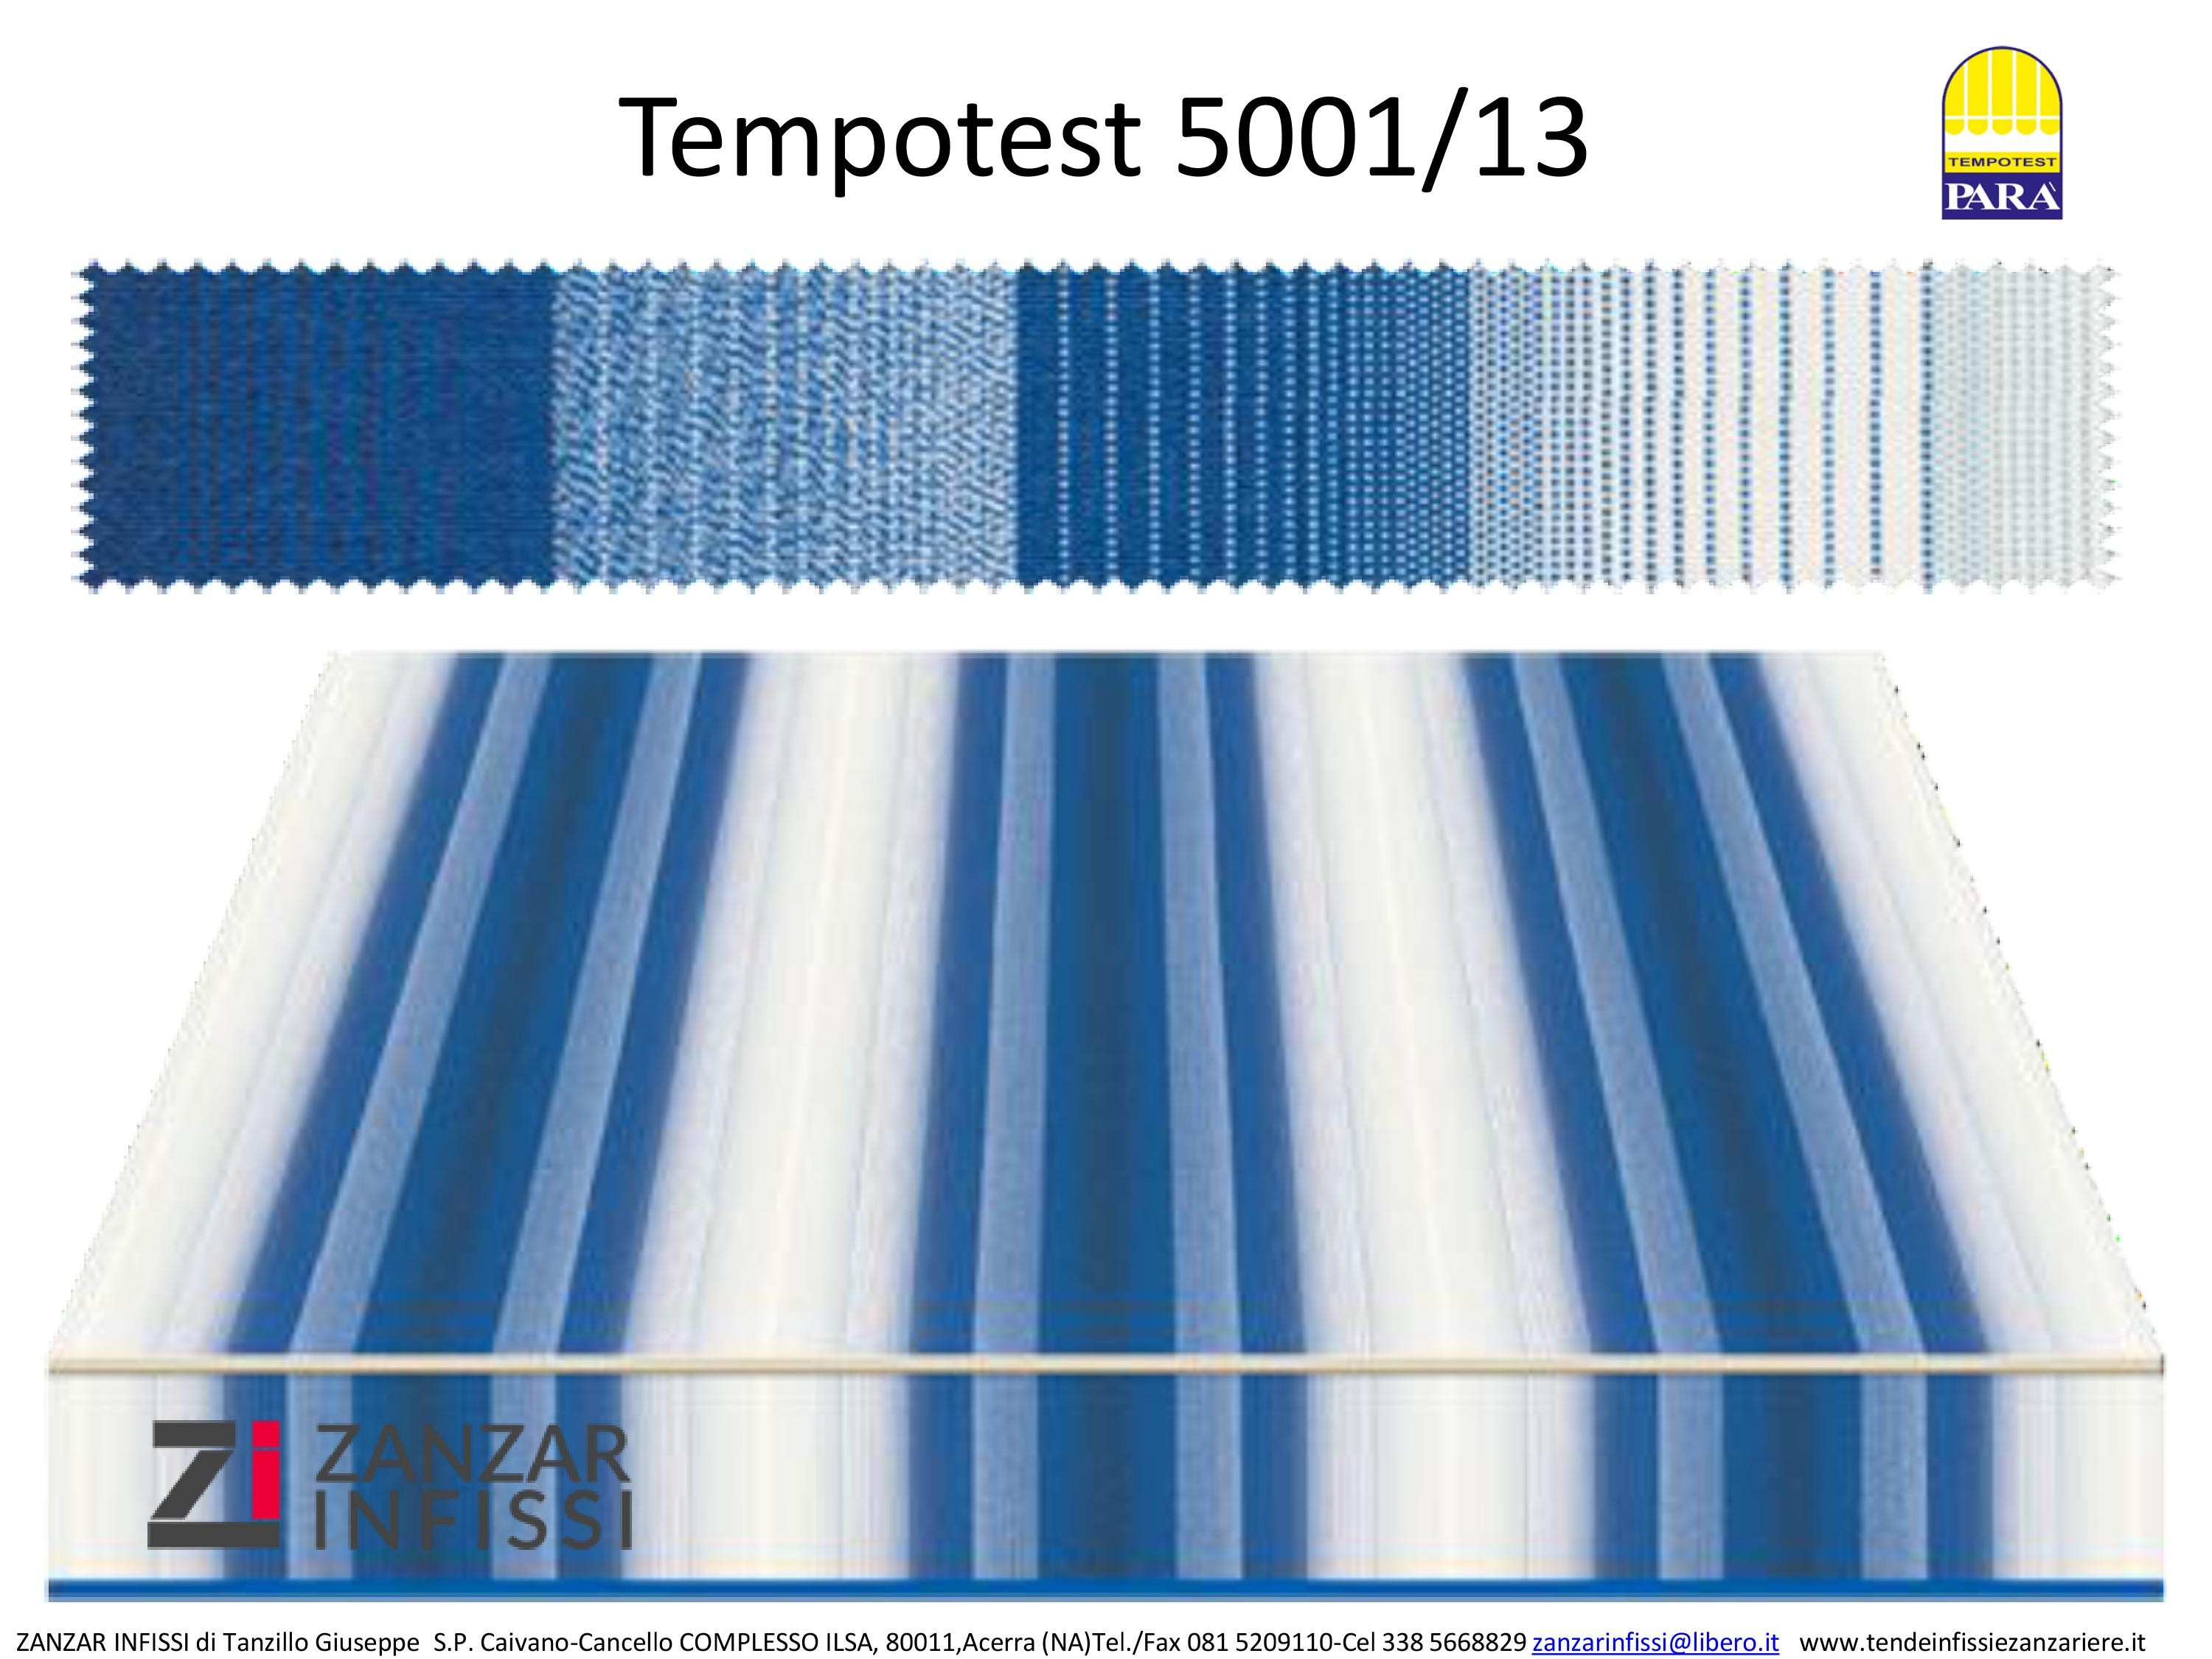 Tempotest 5001/13